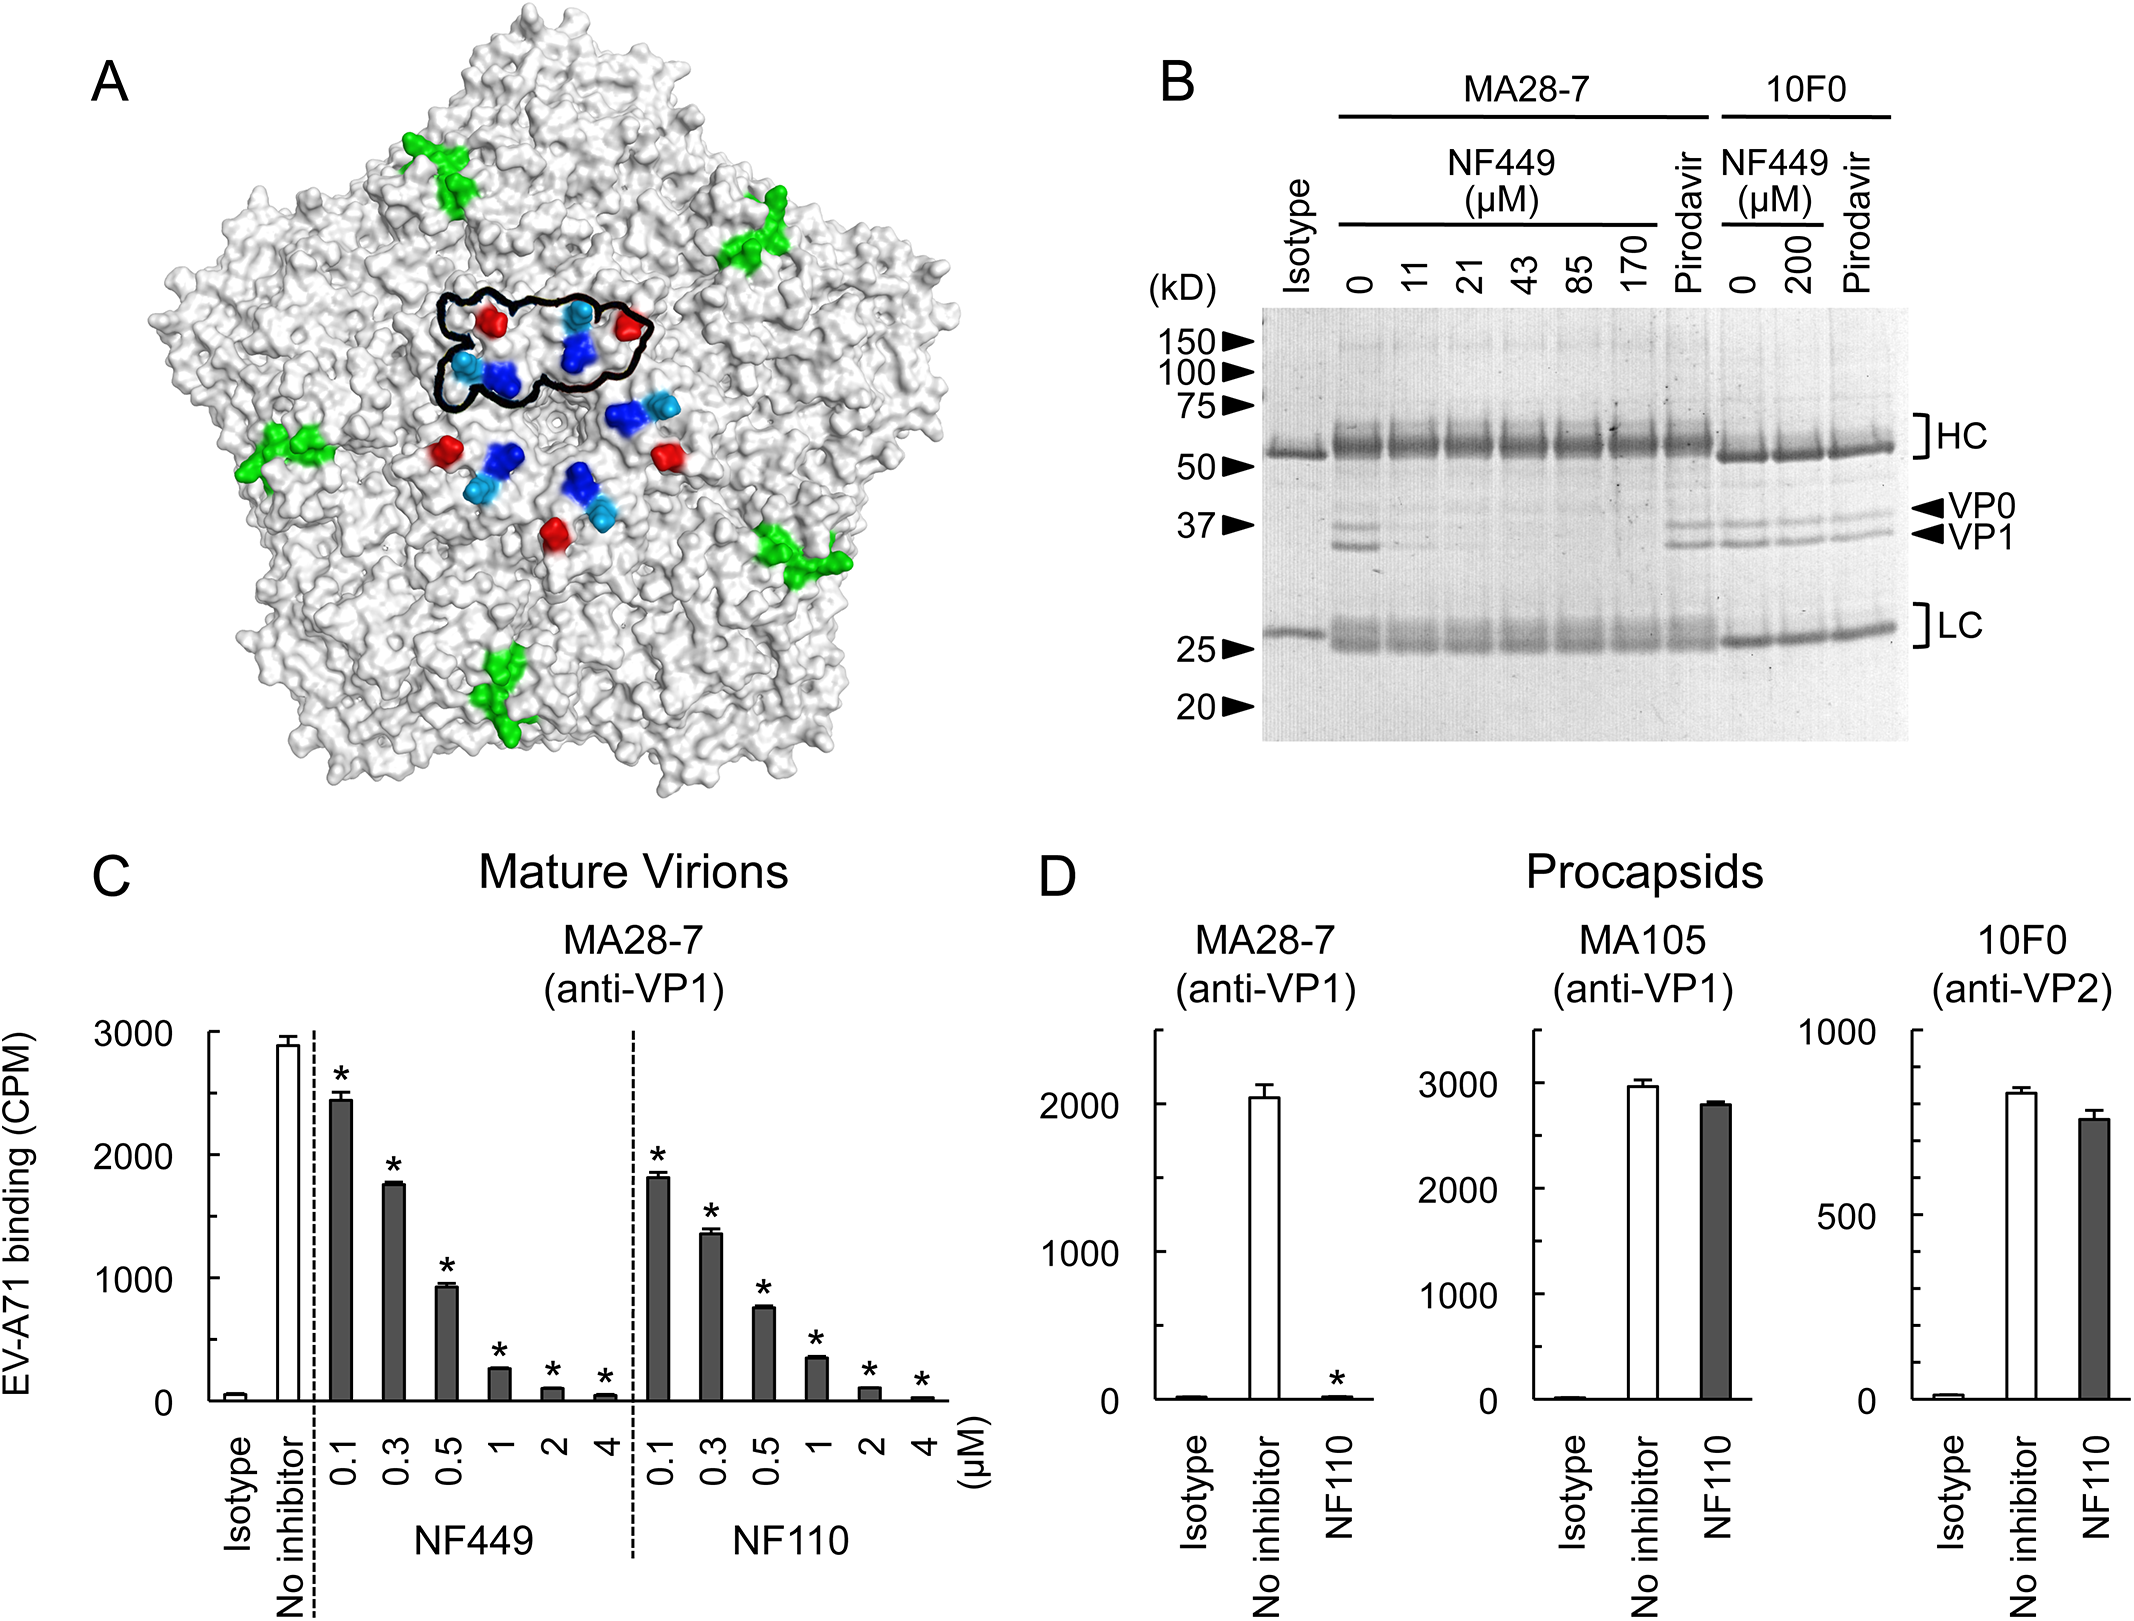 NF449 and NF110 specifically prevent attachment of a monoclonal antibody to the viral 5-fold vertex.